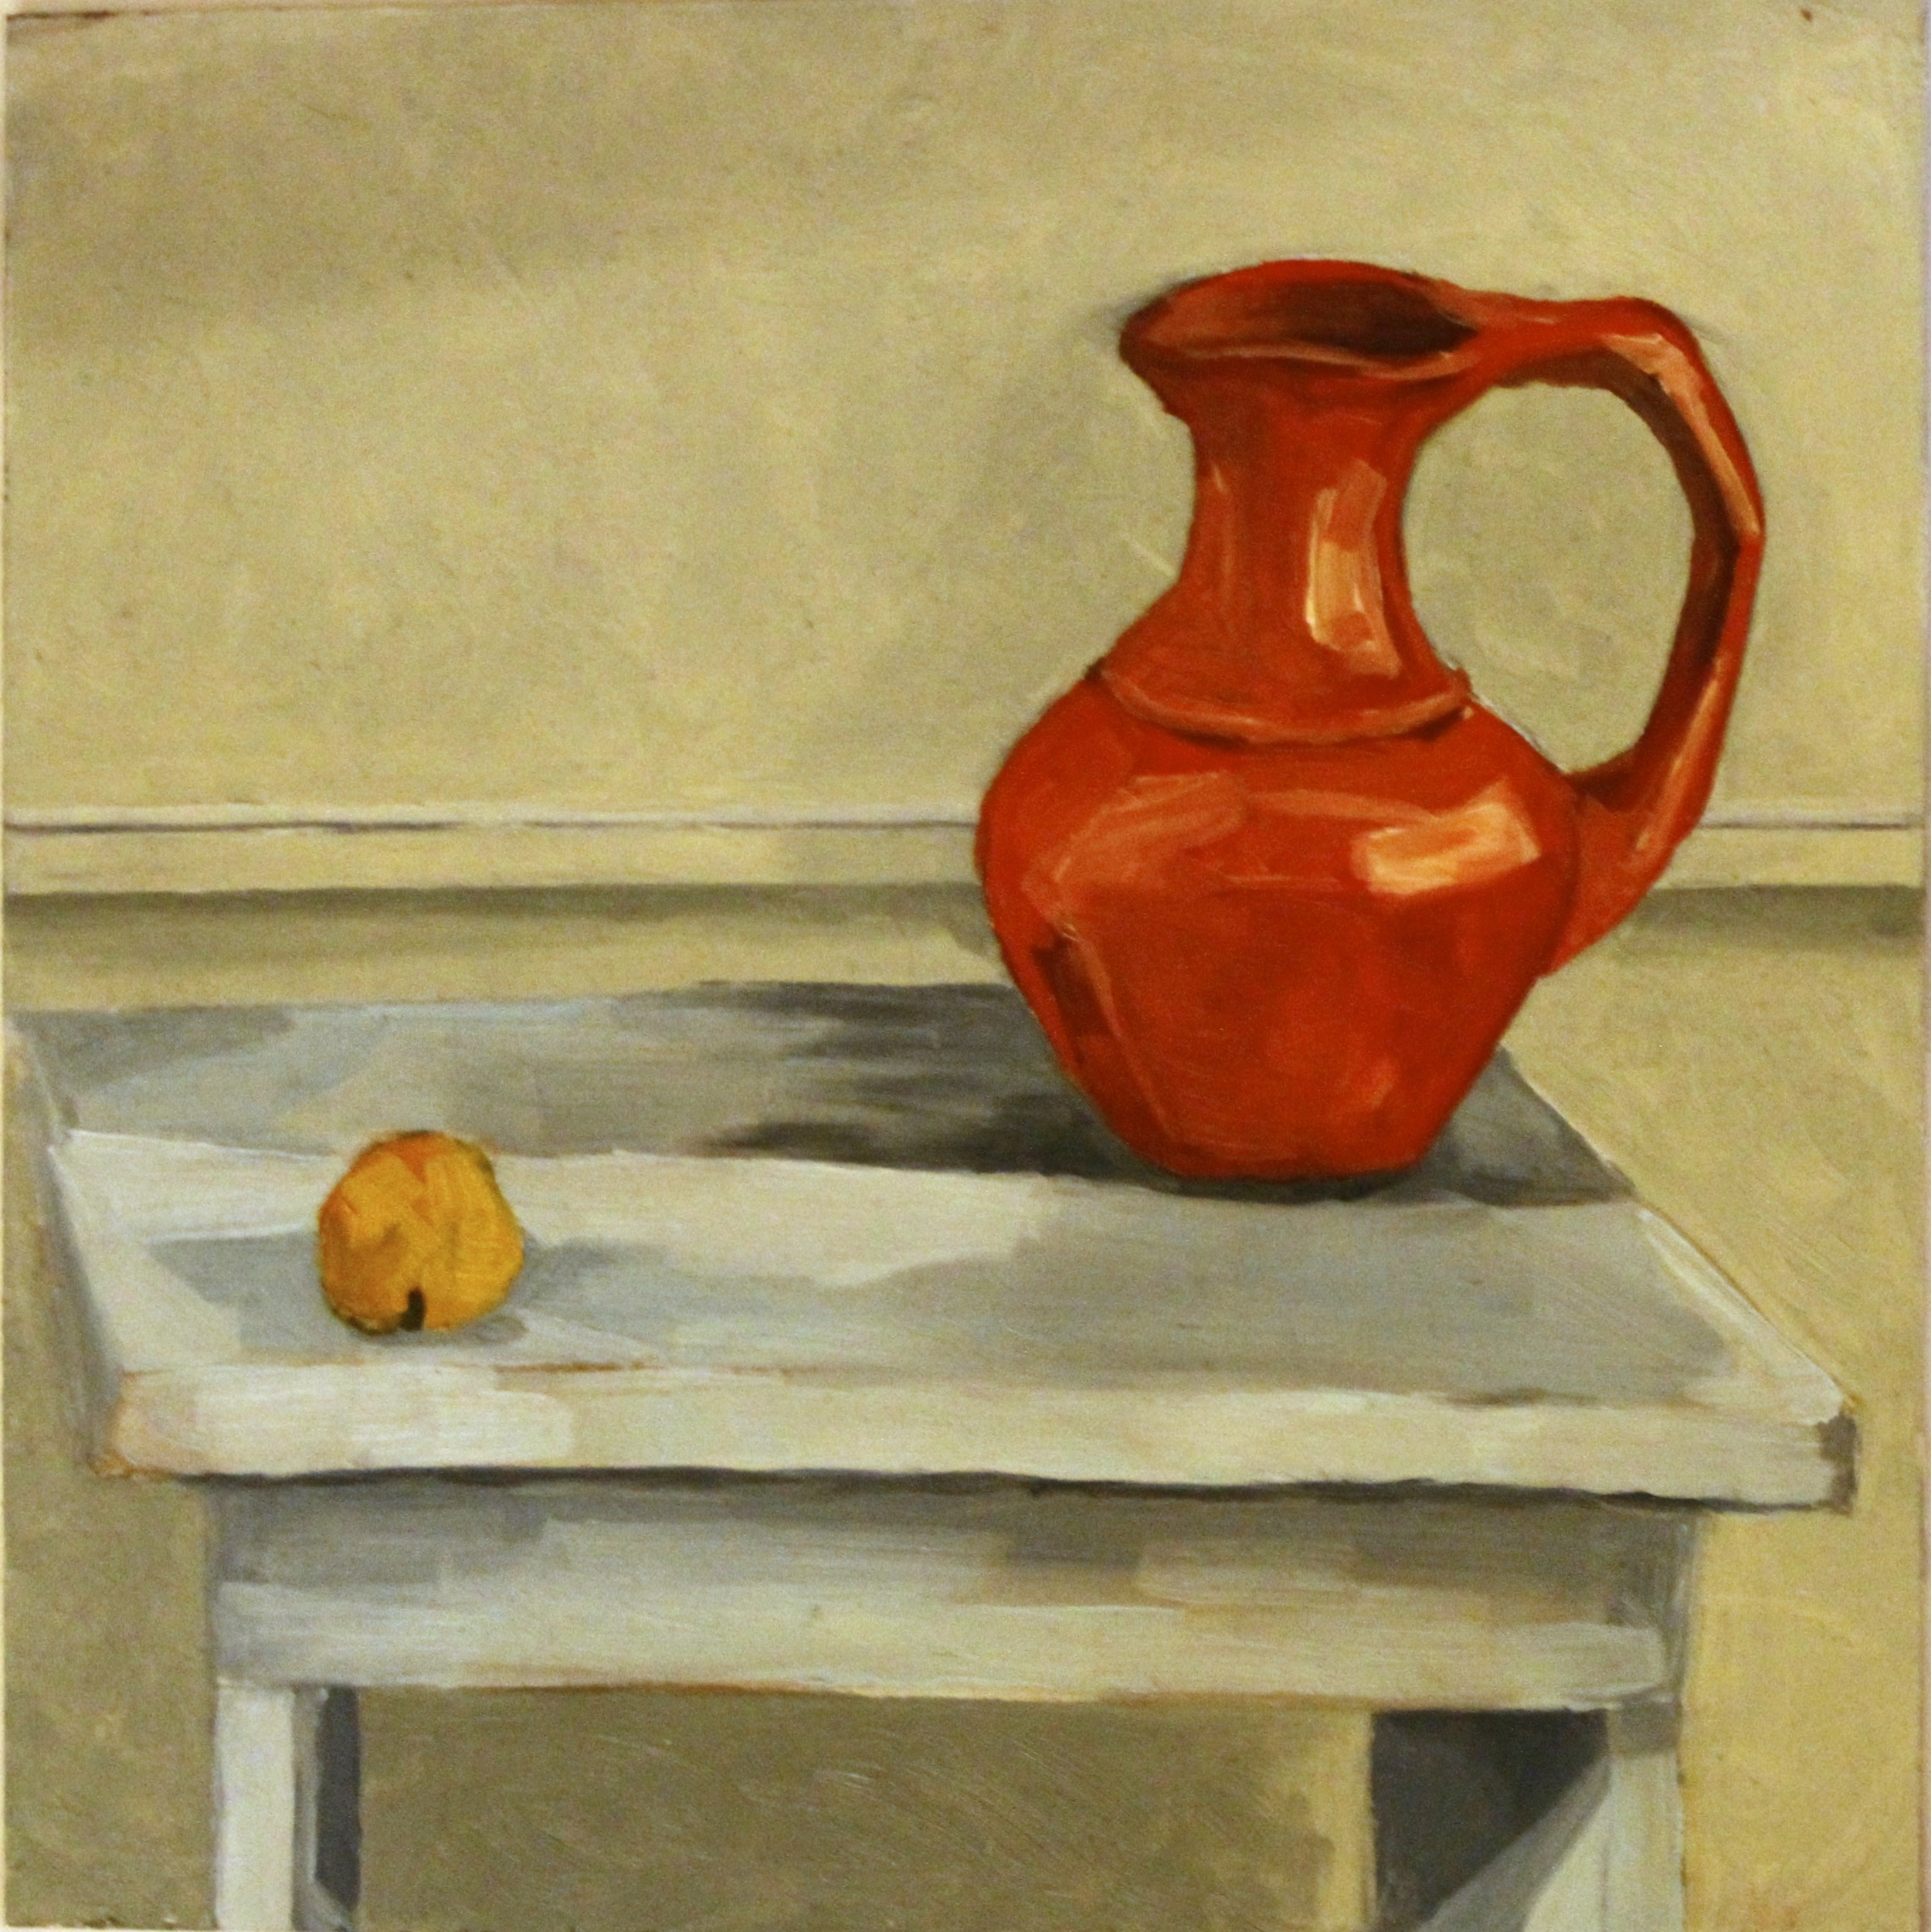 Water Jug and Tomato #2